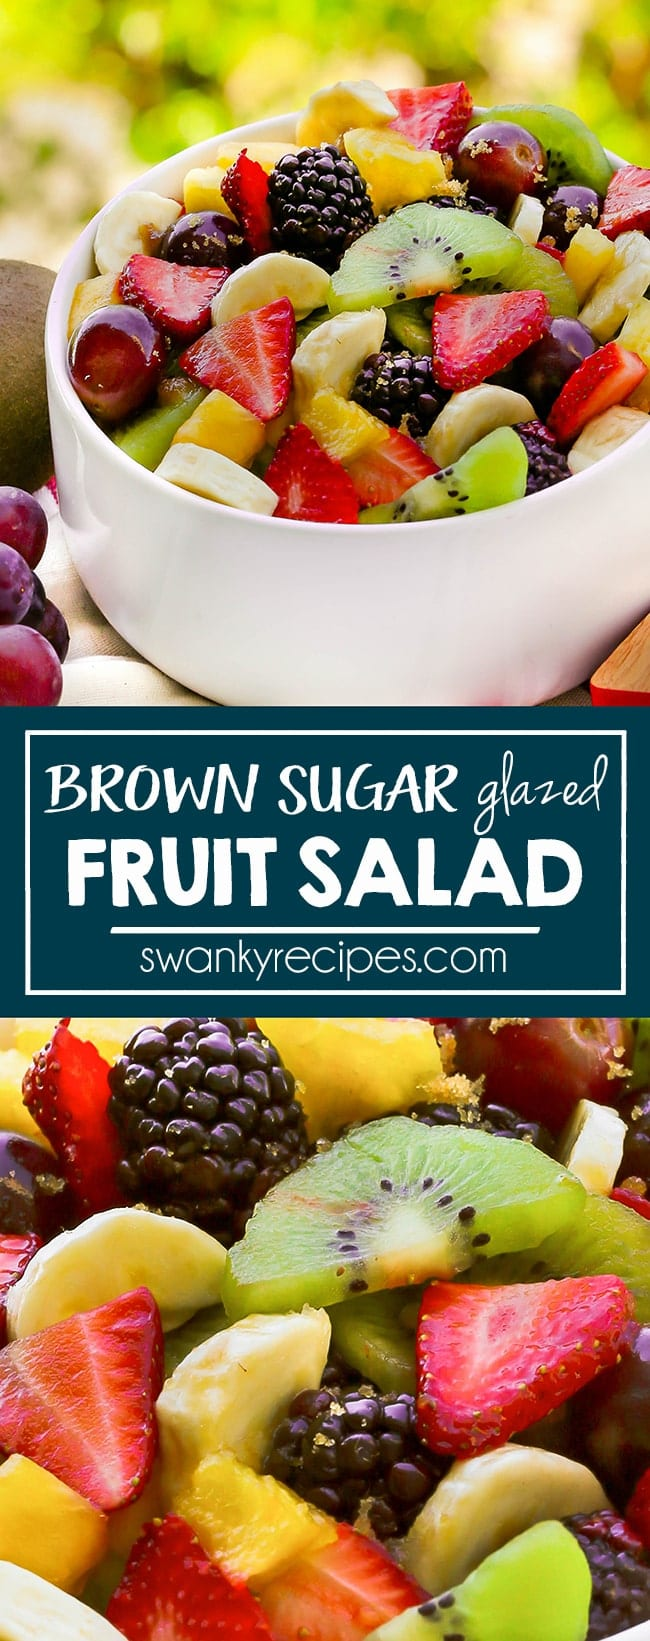 Serve a classic FRUIT SALAD WITH BROWN SUGAR ORANGE GLAZE. Not only is it perfectly healthy, but it's way too easy not to make. Simply slice whole fruits and toss strawberries, kiwi, pineapple, bananas, blueberries, blackberries, and grapes into a serving bowl. Pour over a mixture of the orange juice glaze with brown sugar and pudding for a surprise your family will gobble up.